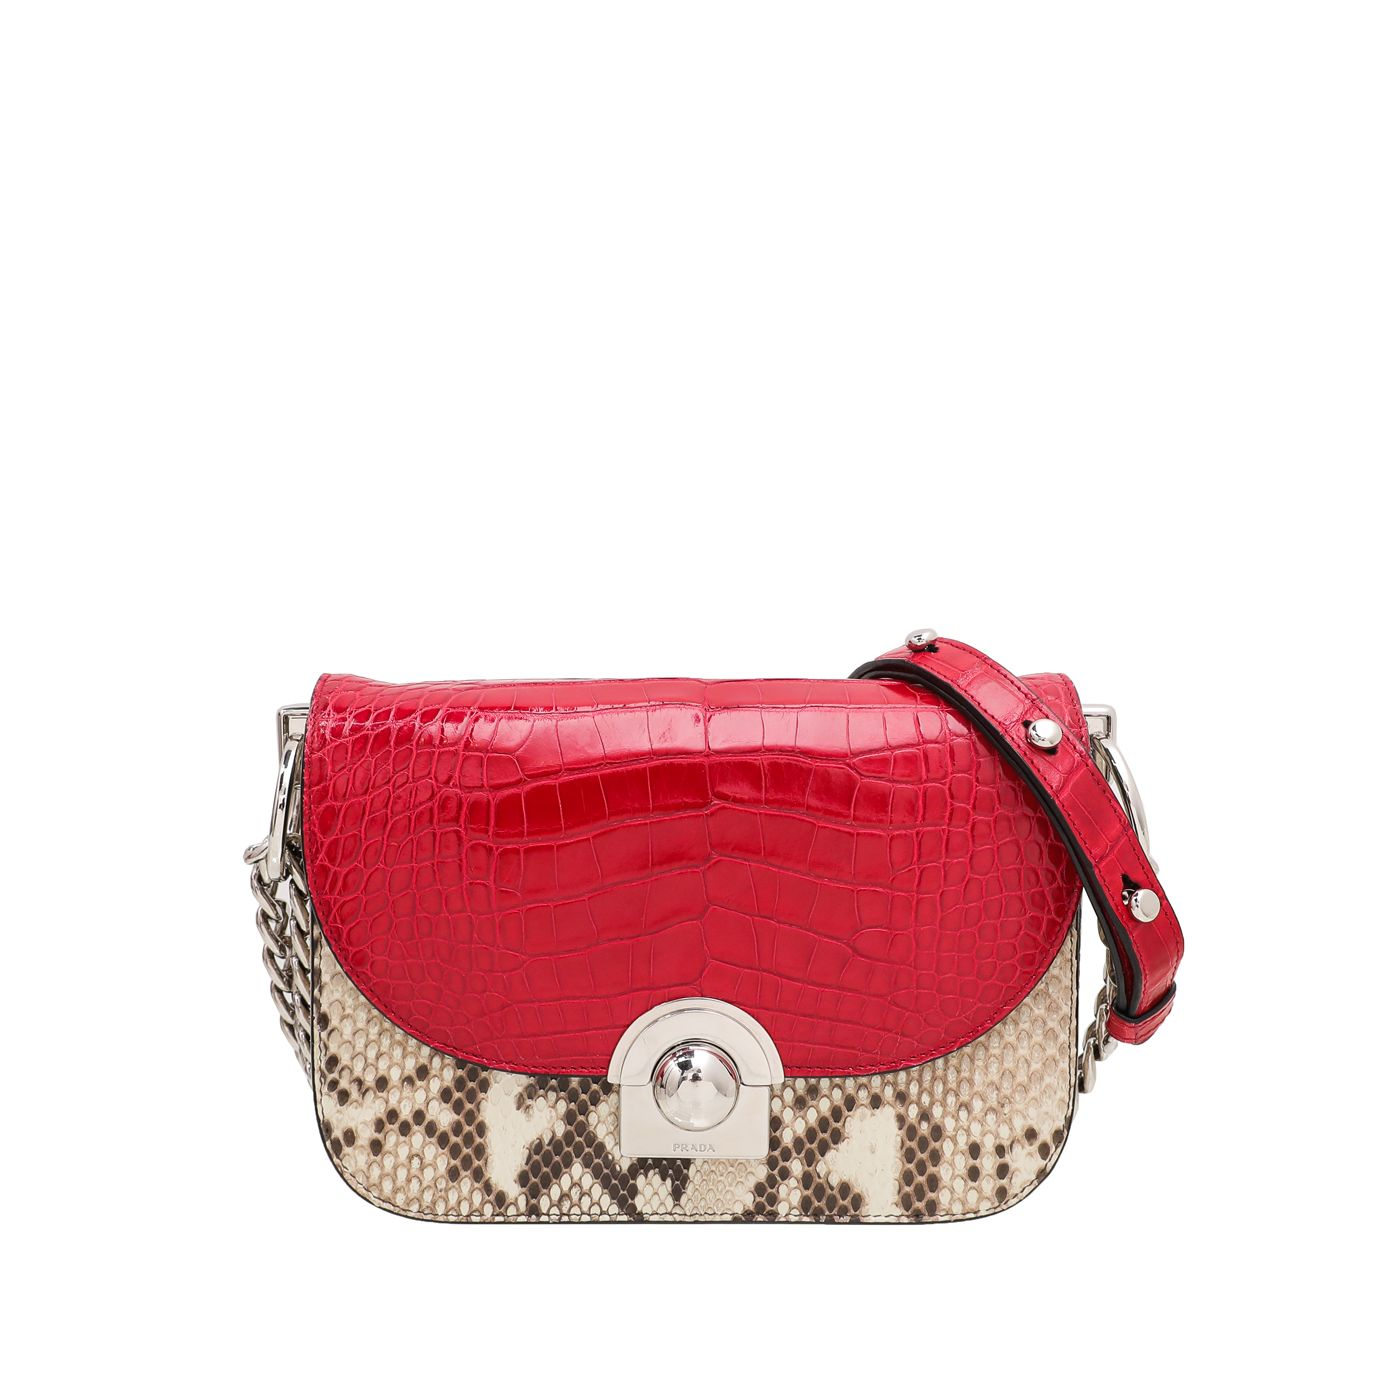 Prada Bicolor Python Arcade Shoulder Bag